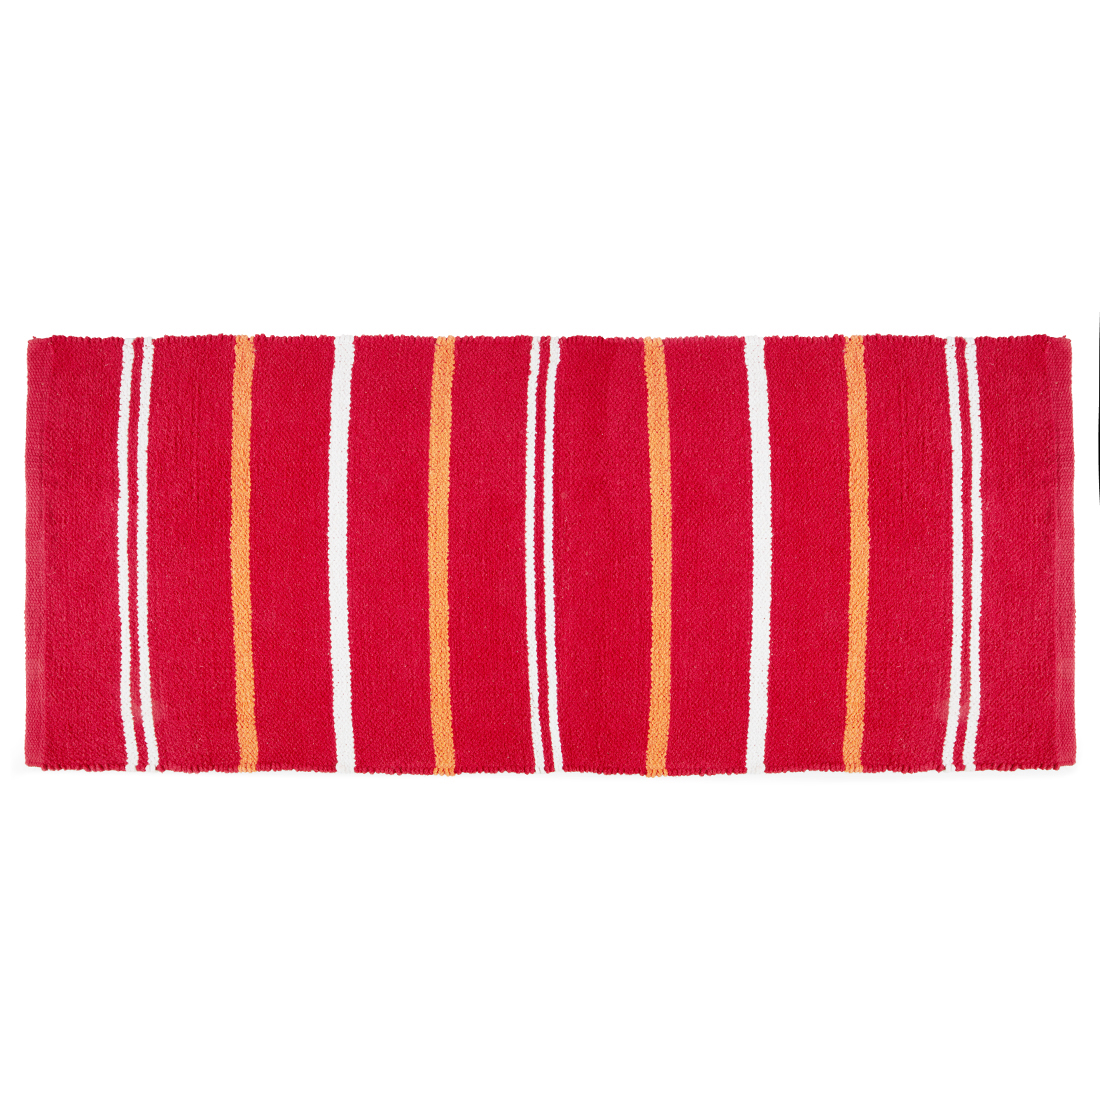 Emilia Chenille Chenille Mats & Rugs in Red Colour by Living Essence